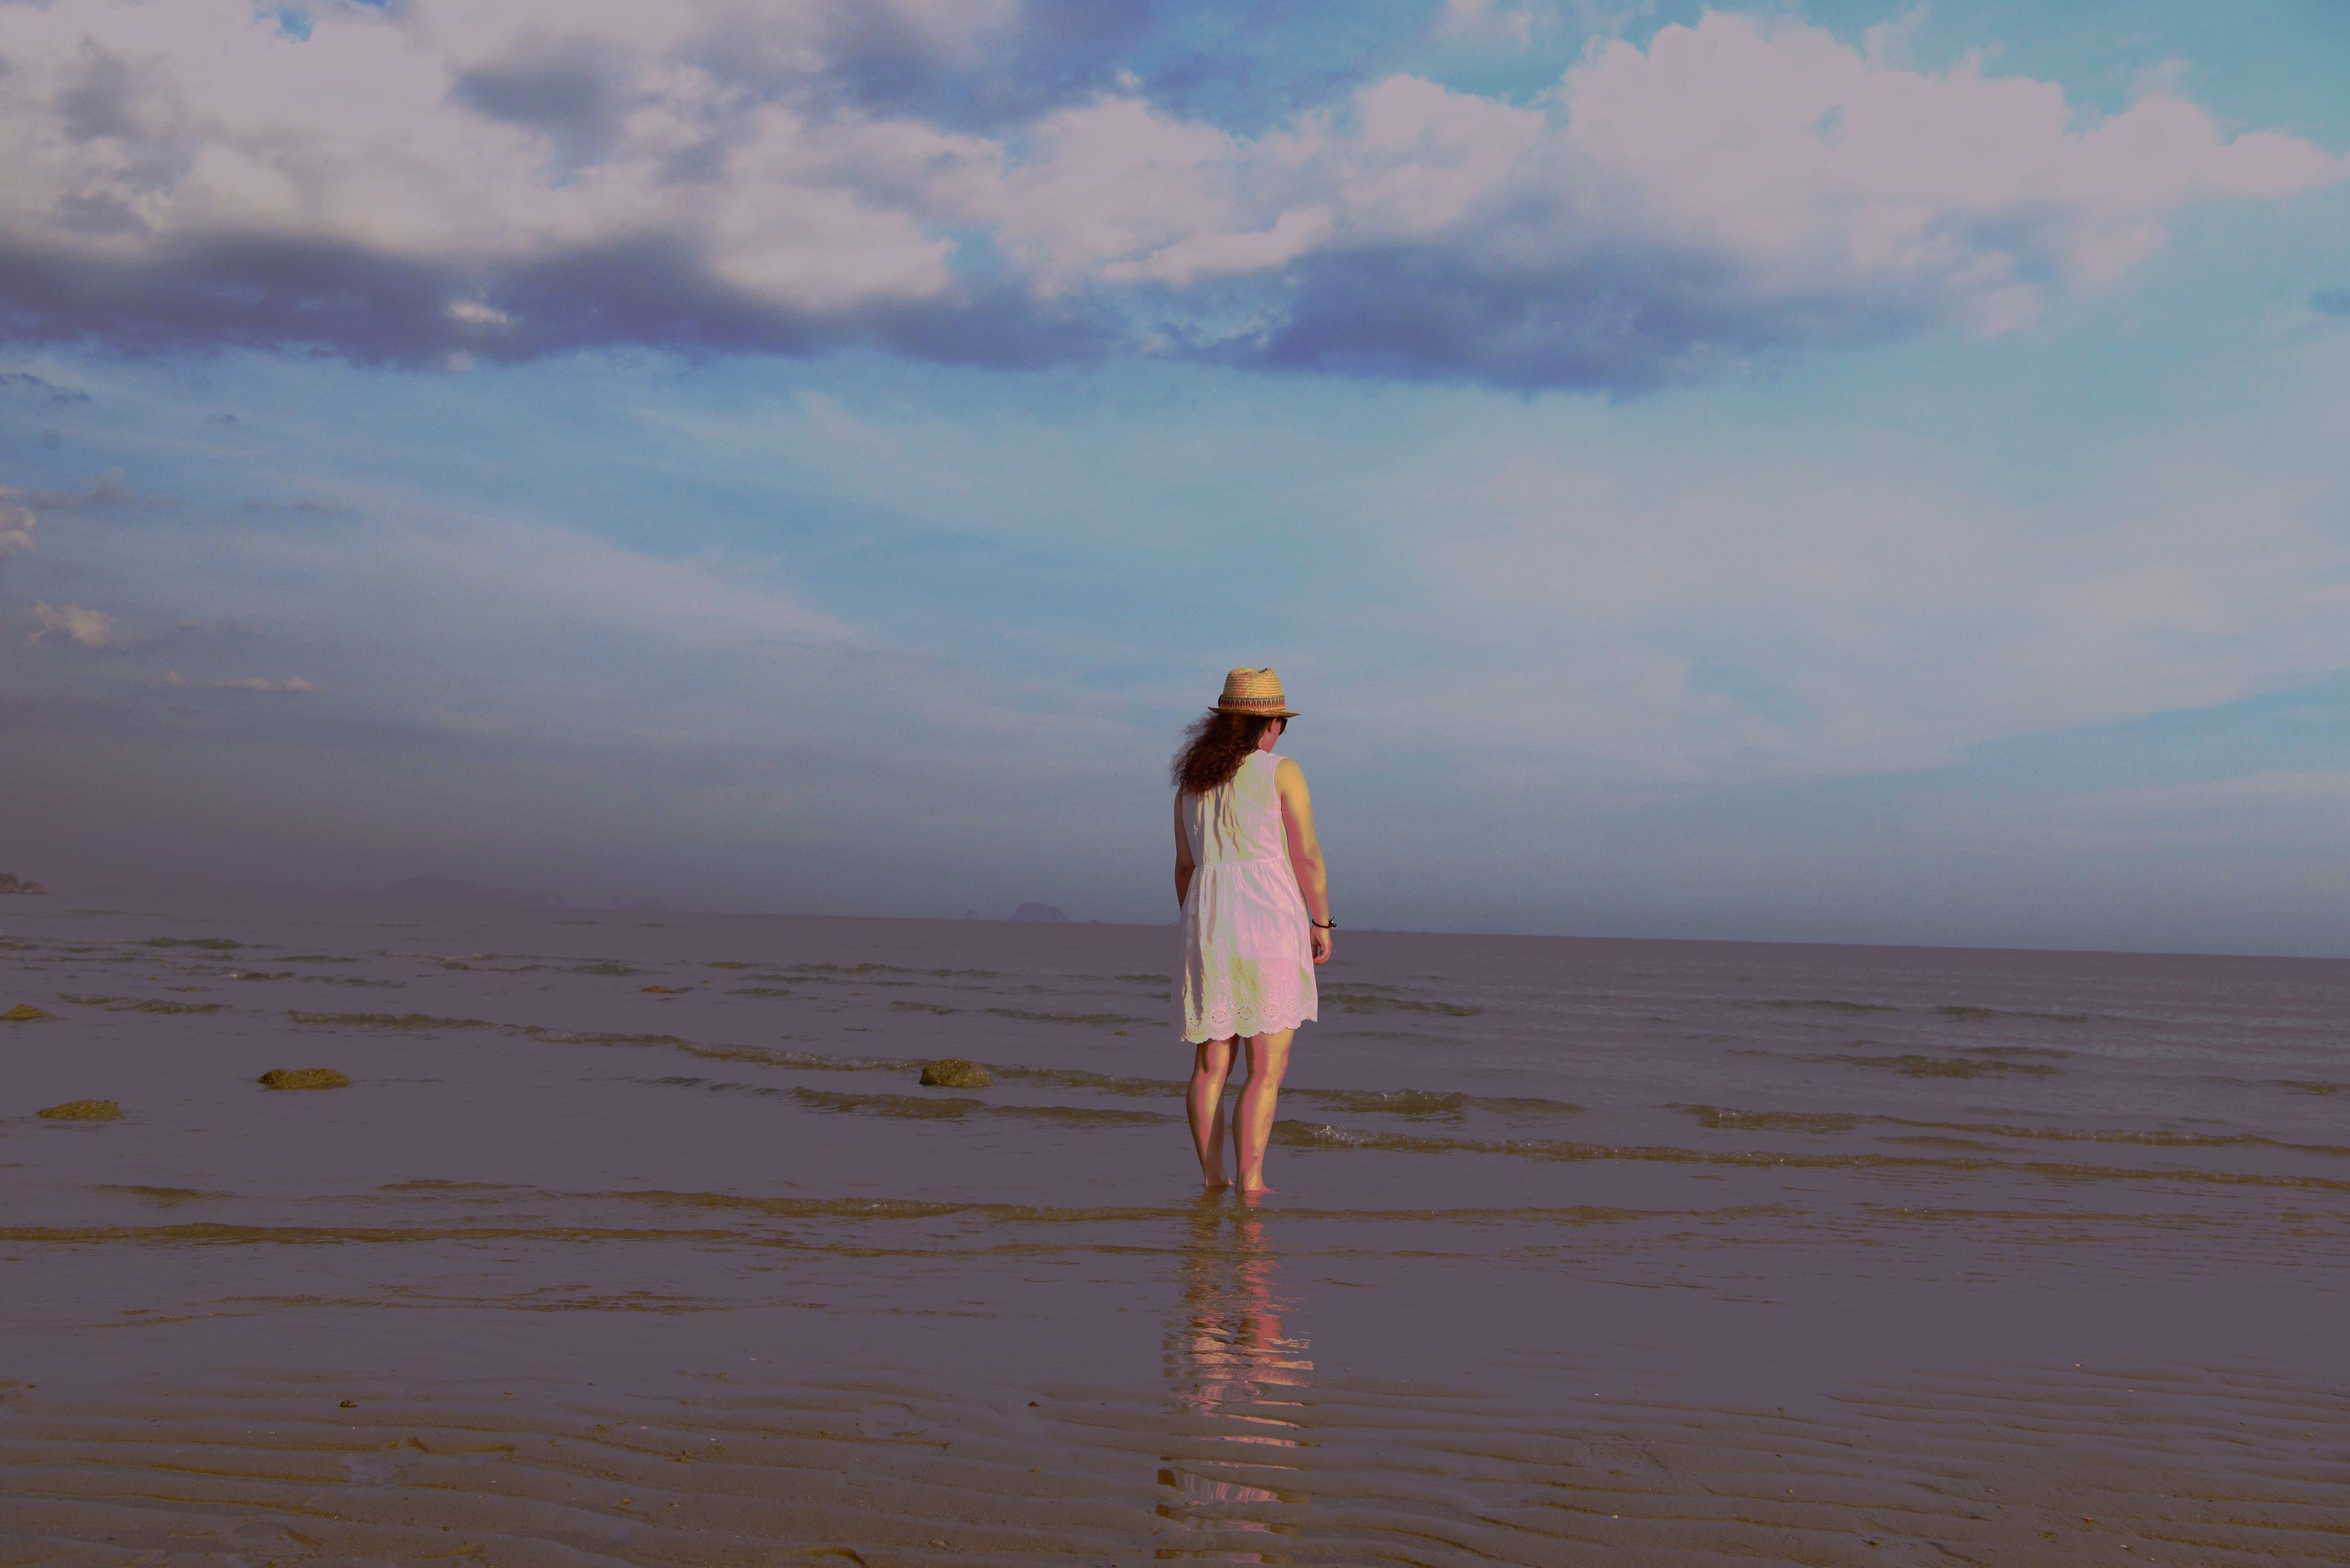 sea, water, sky, horizon over water, rear view, standing, beach, tranquility, lifestyles, leisure activity, tranquil scene, full length, person, scenics, shore, beauty in nature, nature, walking